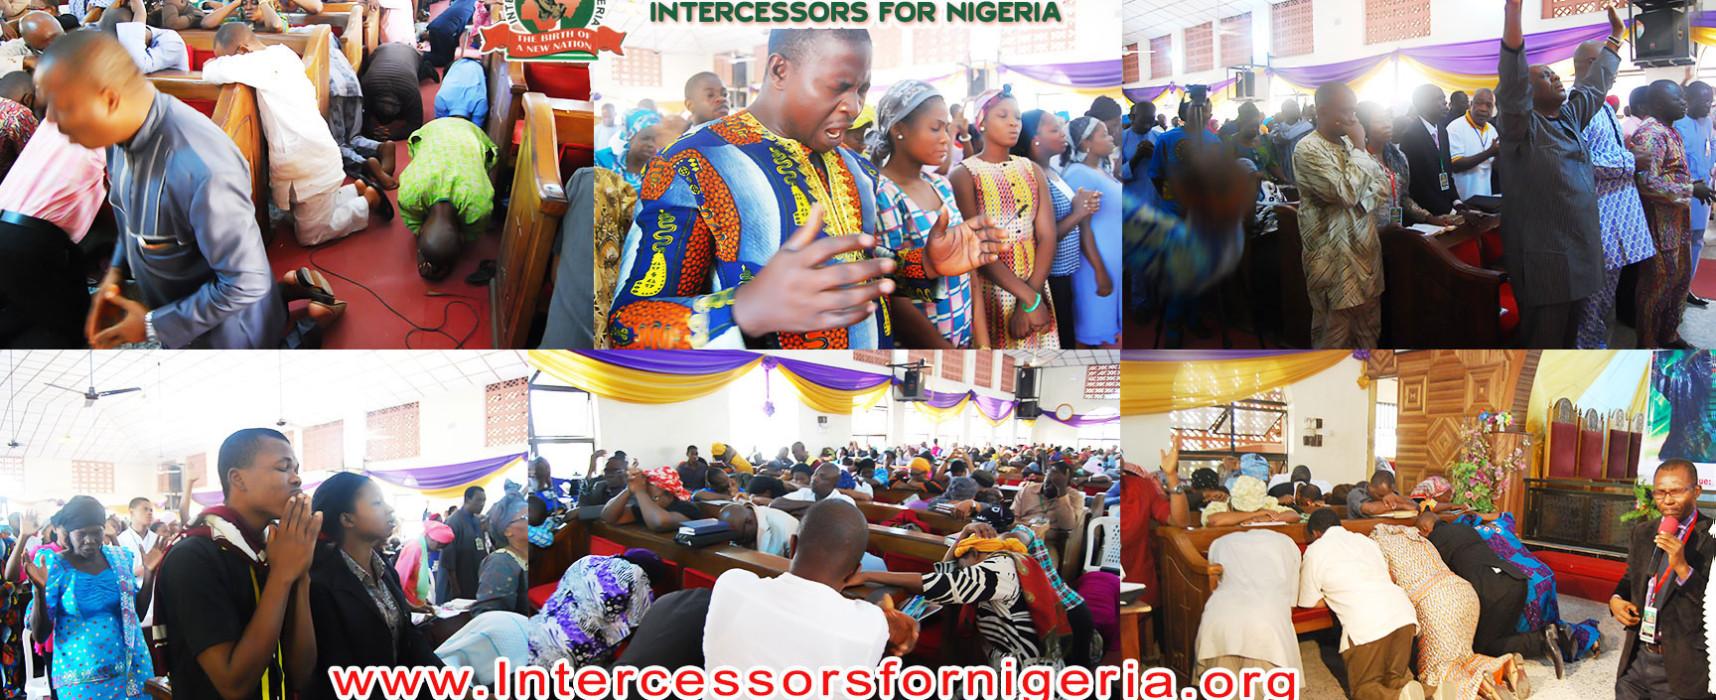 DAY 2: 34th National Prayer Conference – Possessing the Land II